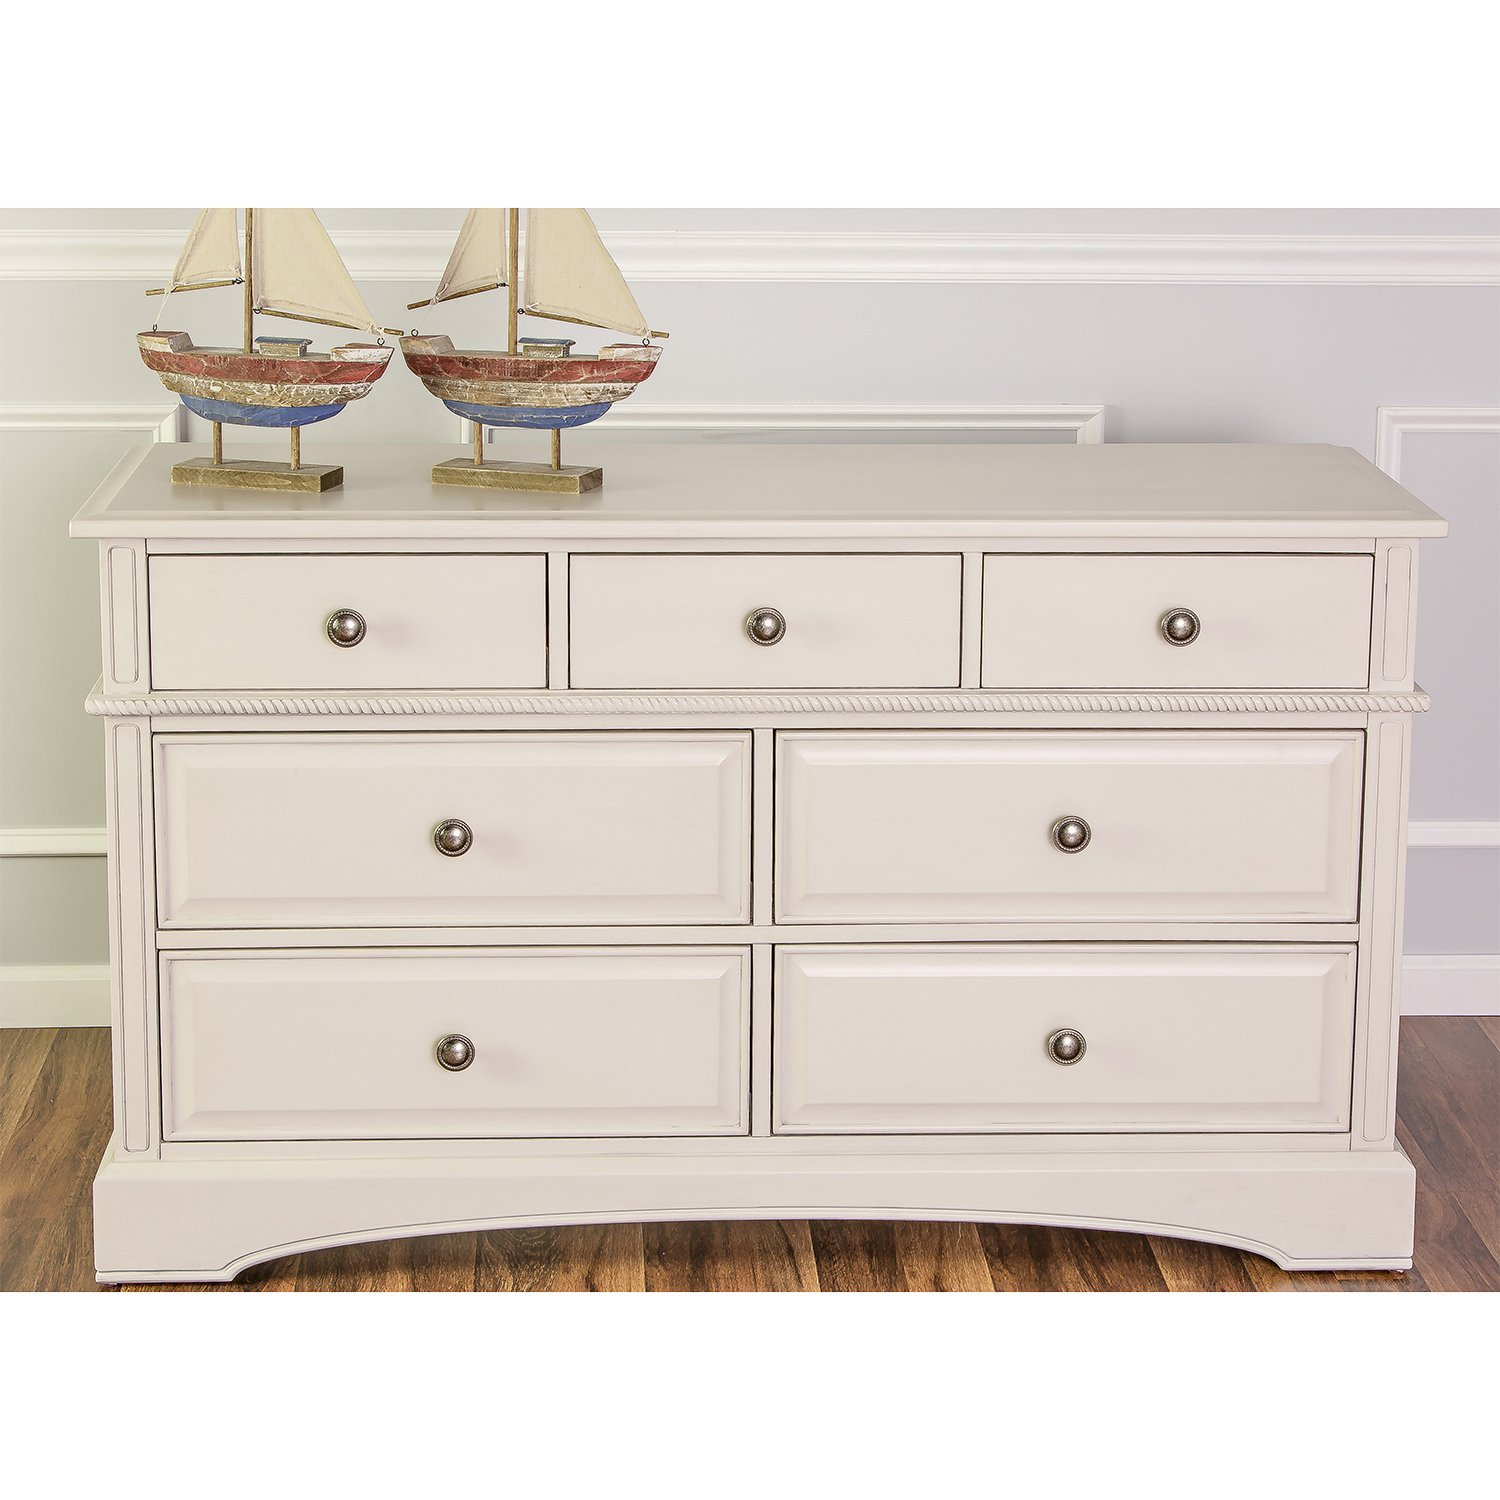 Evolur Double - Drawers Dresser in Antique White